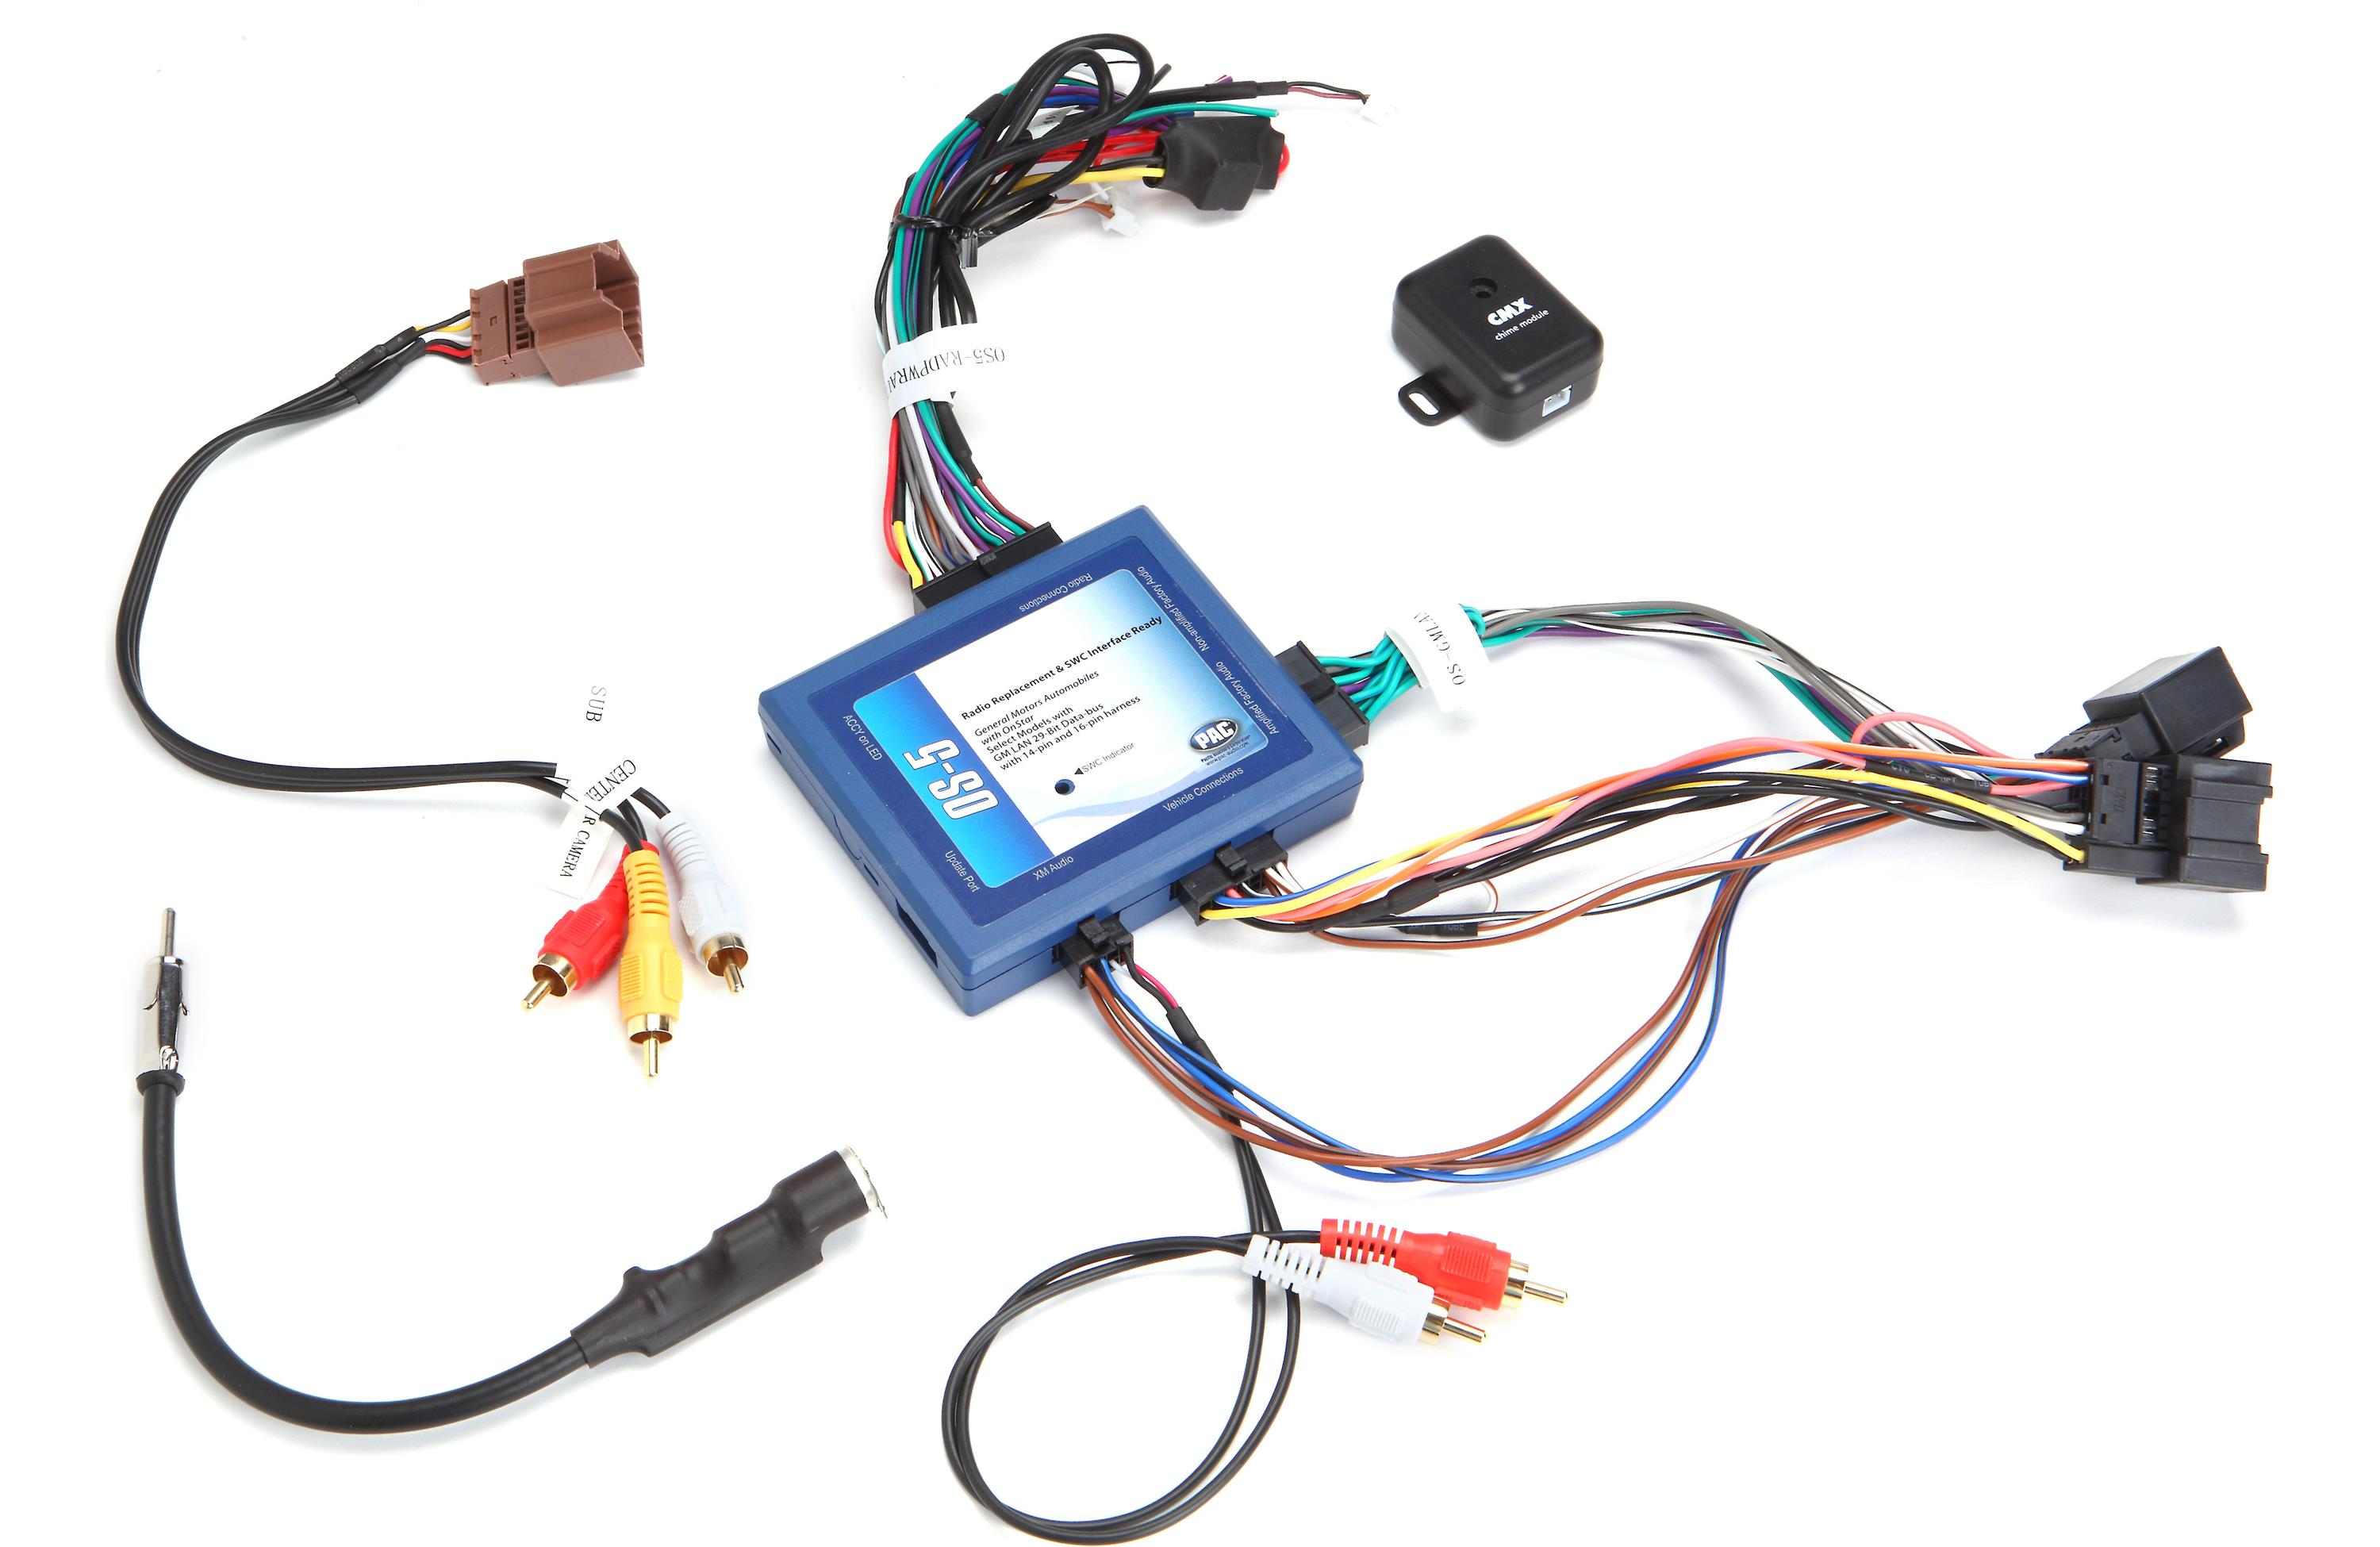 pac os 5 radio replacement interface harness for select gm vehicles rh ebay com